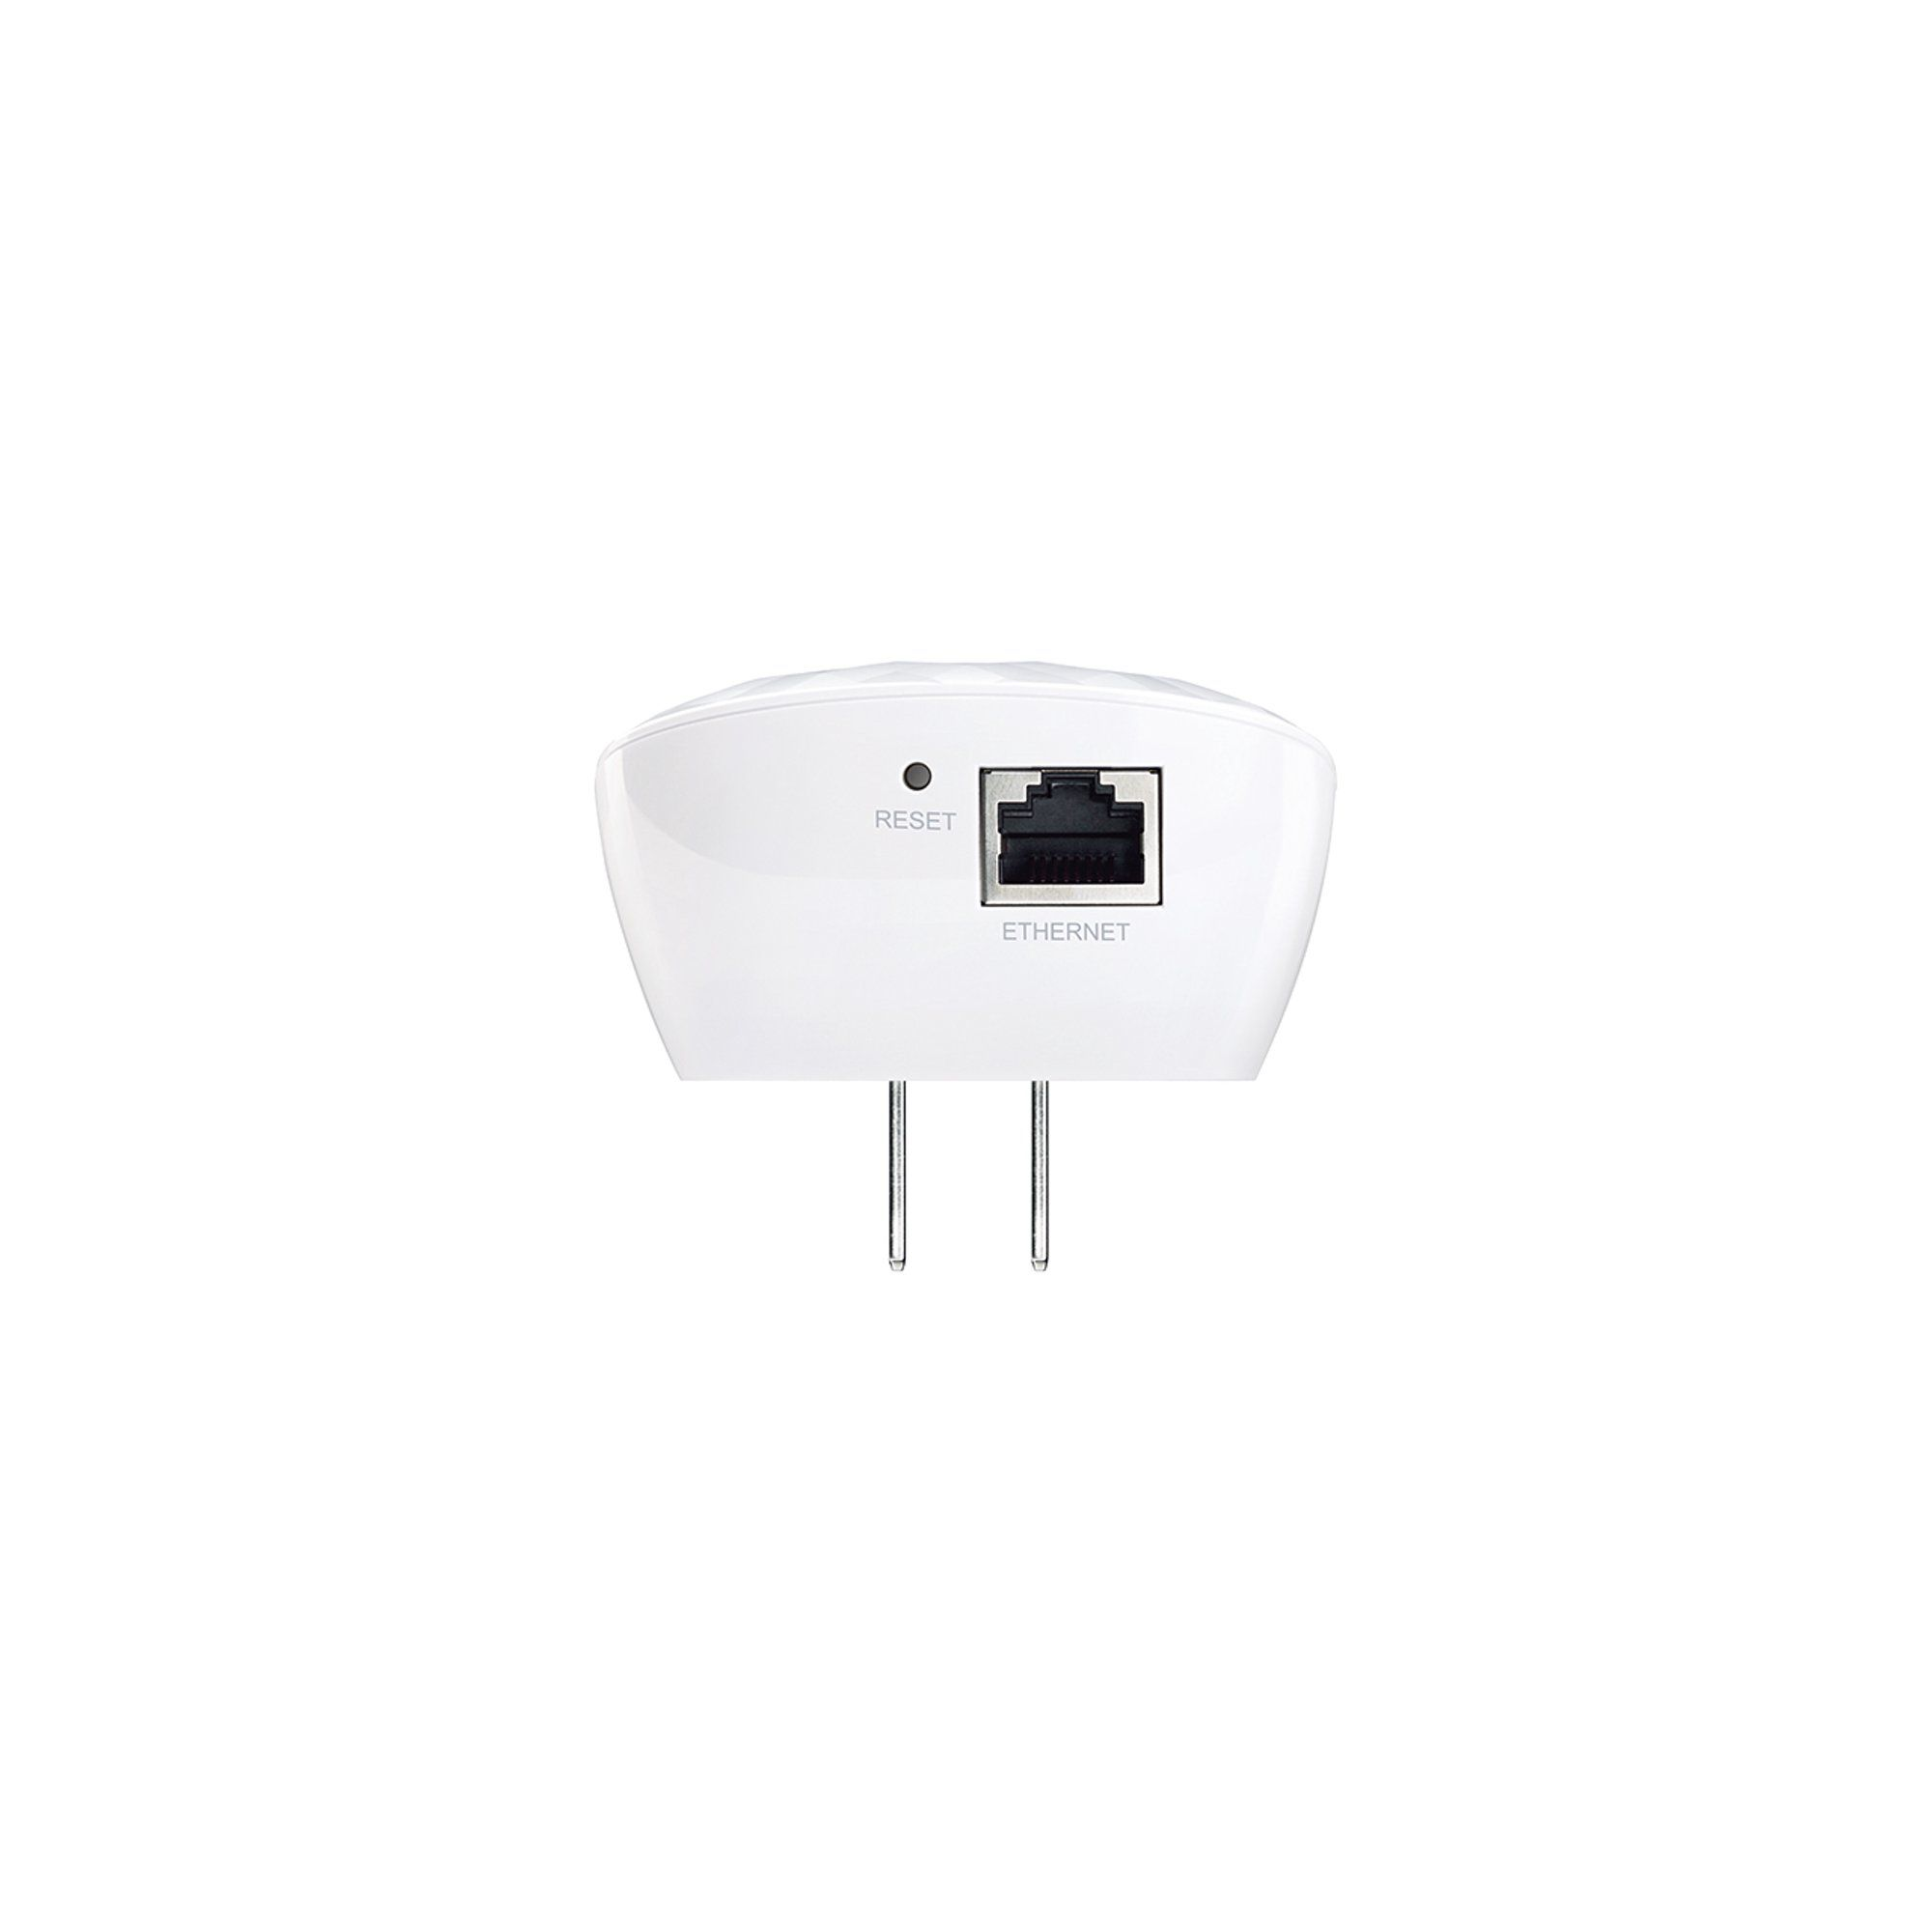 Tp Link Re200 Ac750 Dual Band Wi Fi Range Extender Works With Any Router Or Wifi System Walmart Com Dual Band Tp Link Wifi